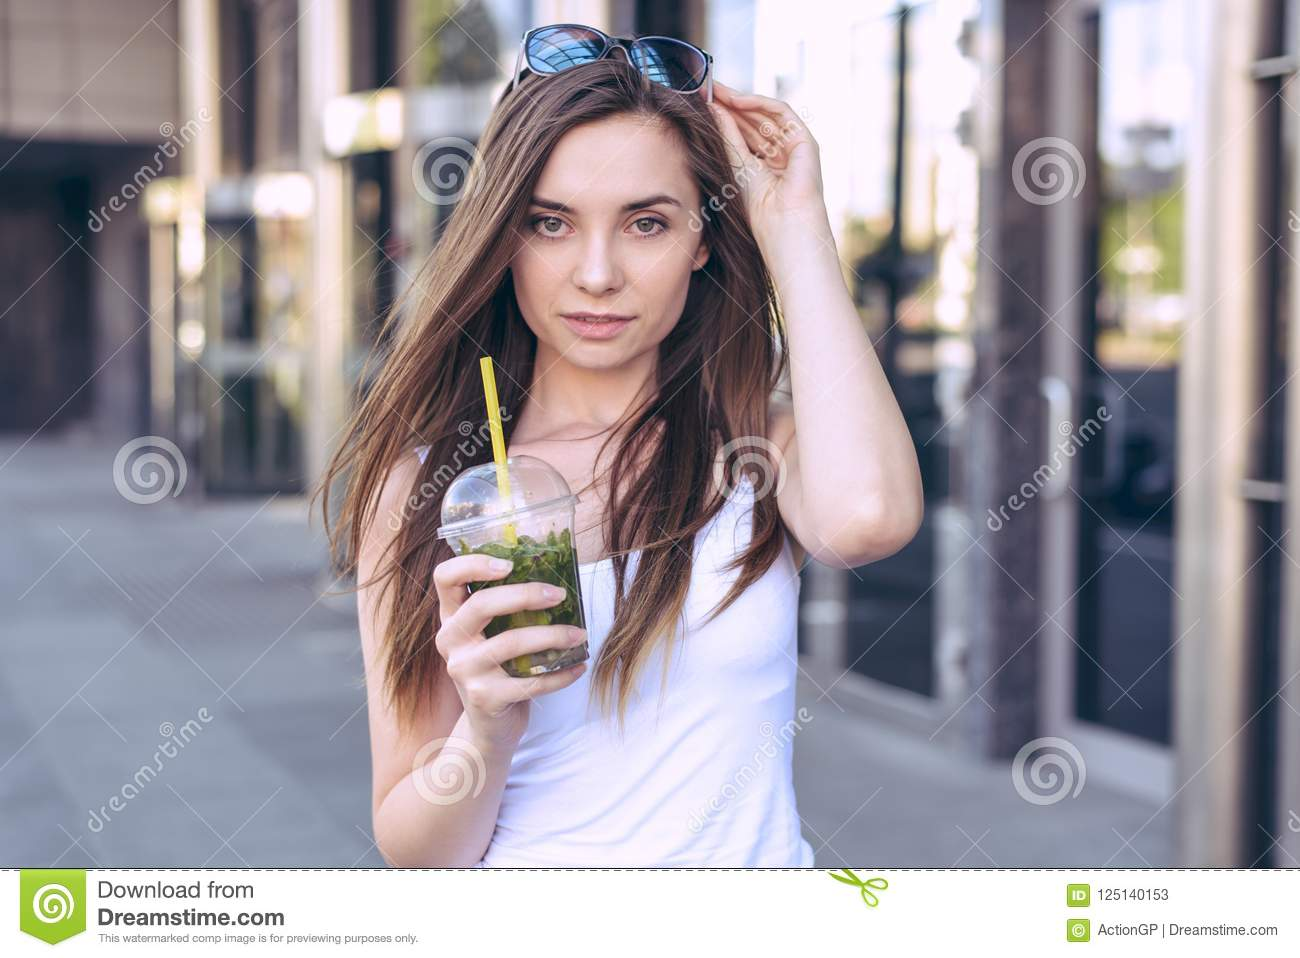 Close up photo portrait of attractive trendy confident flirty coquette lady wearing casual white t-shirt touching glasses on head